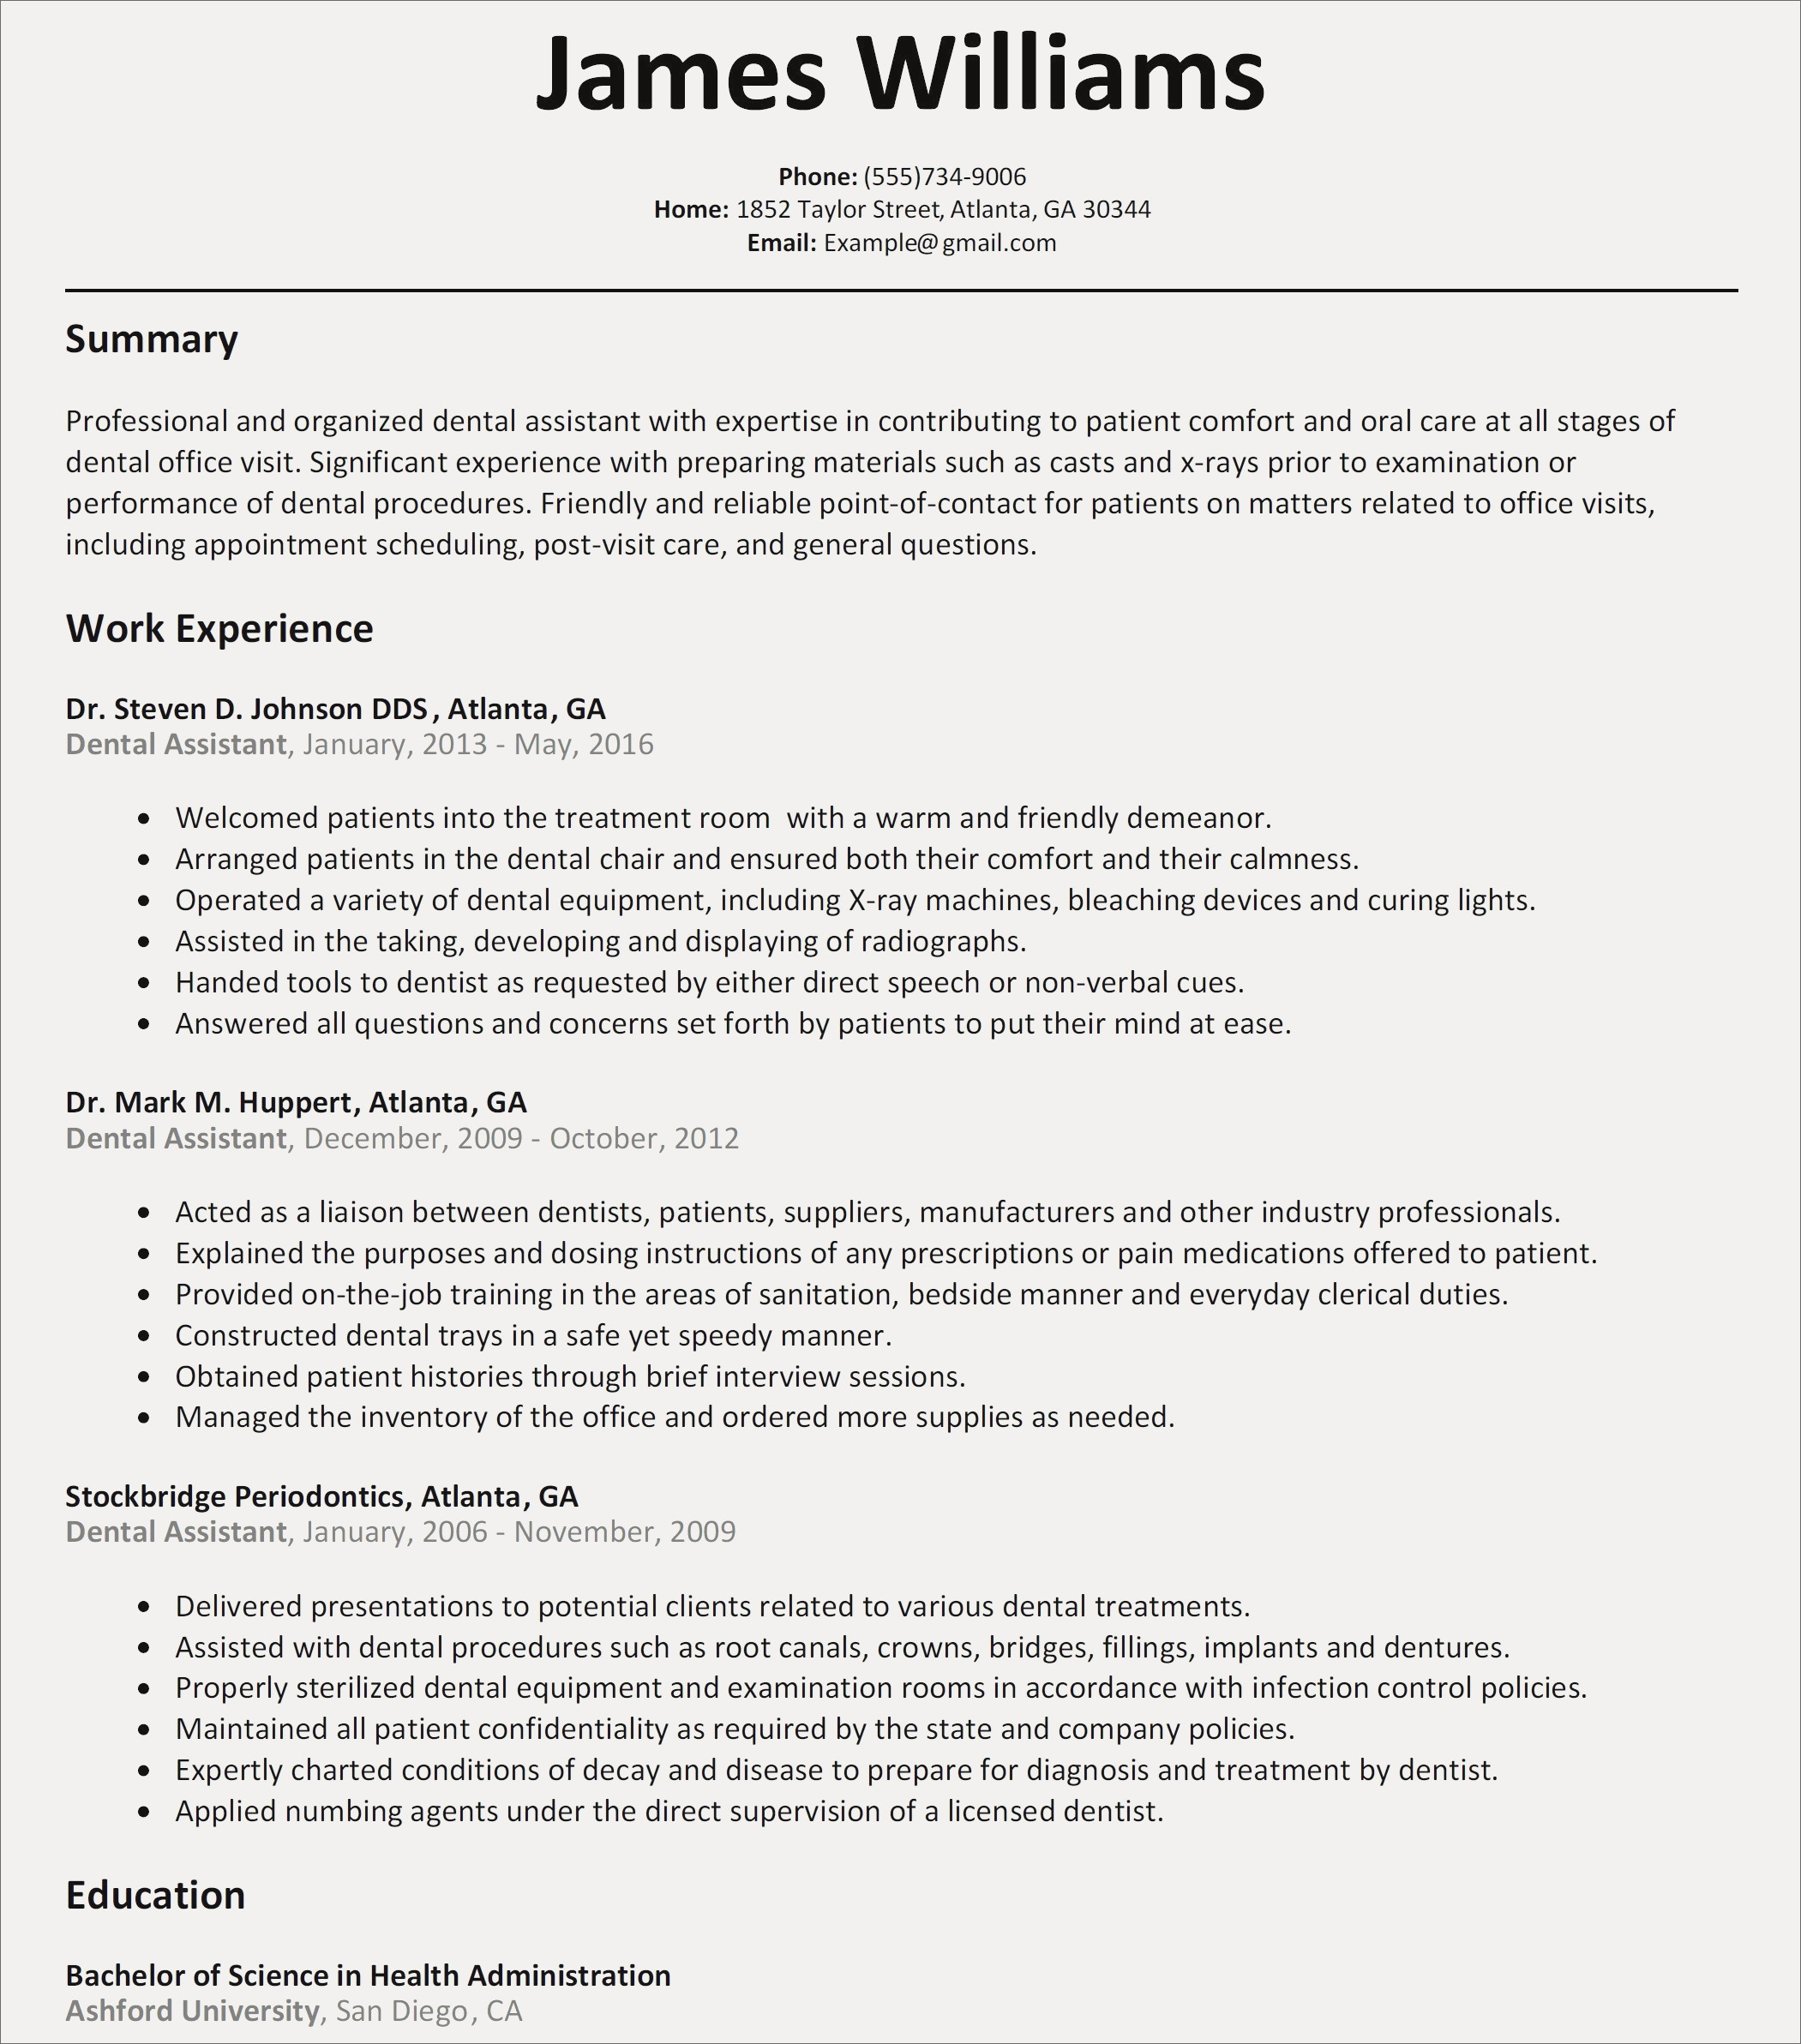 Resume Writing Services atlanta - How to Make A Resume Cove Best How to Write A Cover Letter for